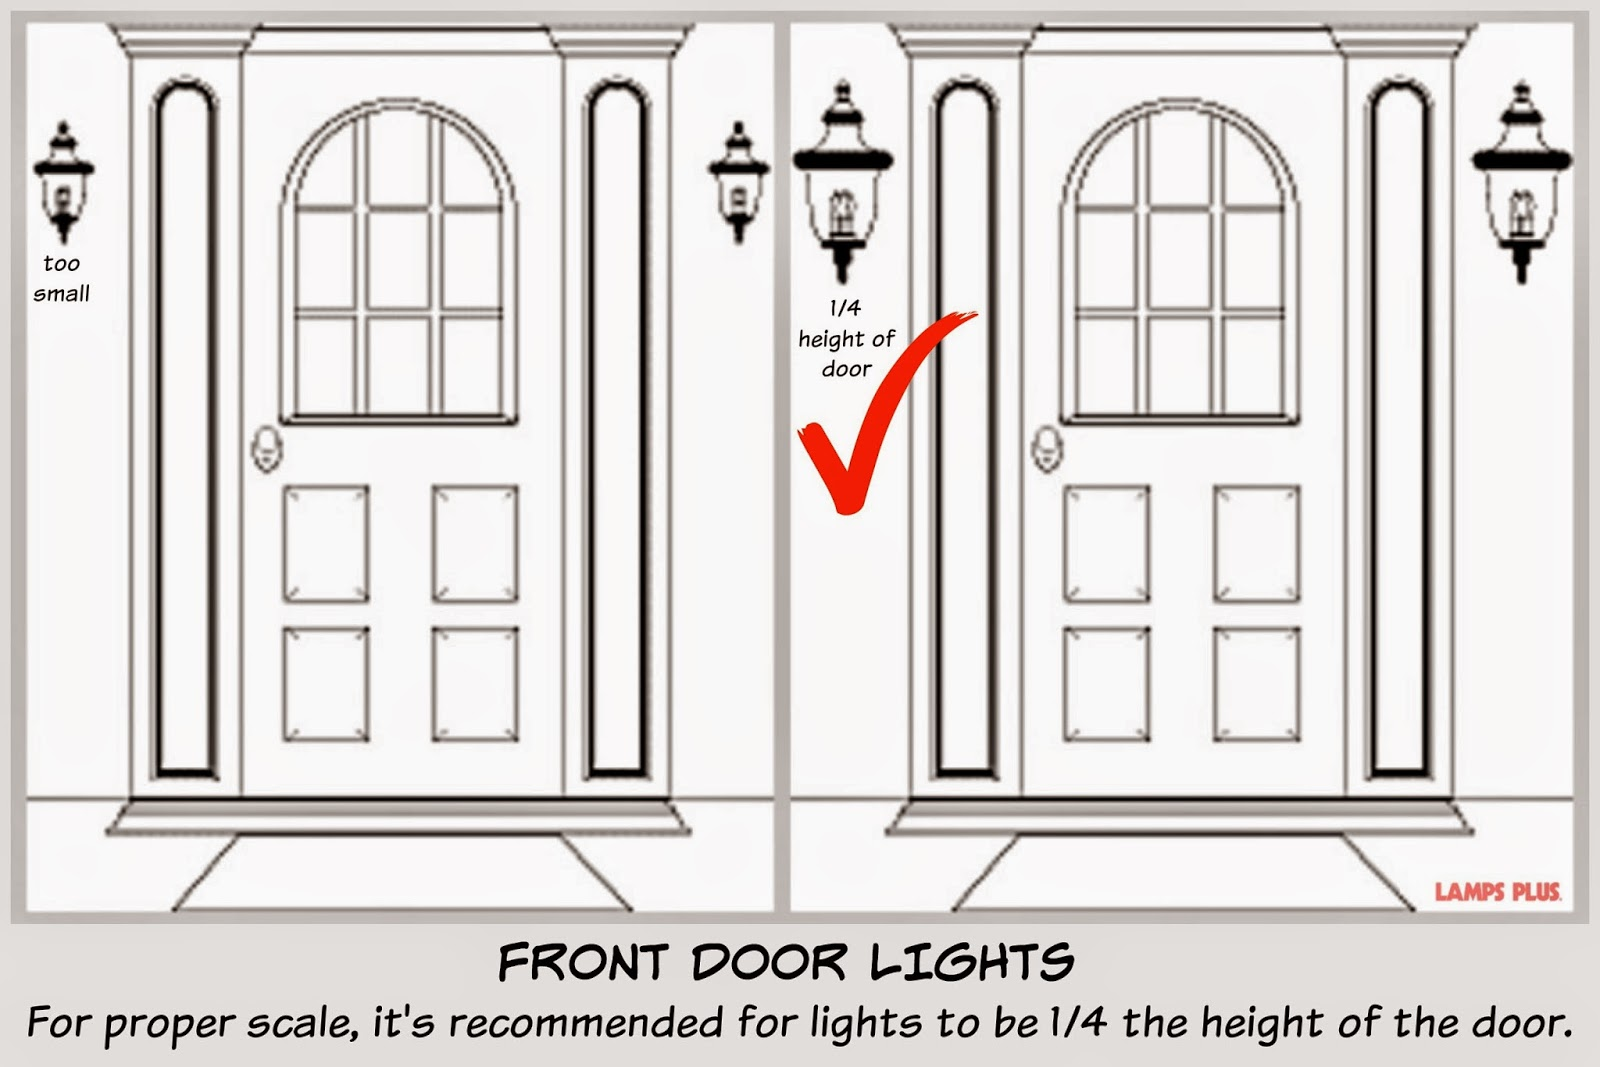 Exterior Wall Sconce Mounting Height : FOCAL POINT STYLING: Exterior Home Improvements with Black - Shutters, Lights & Doors